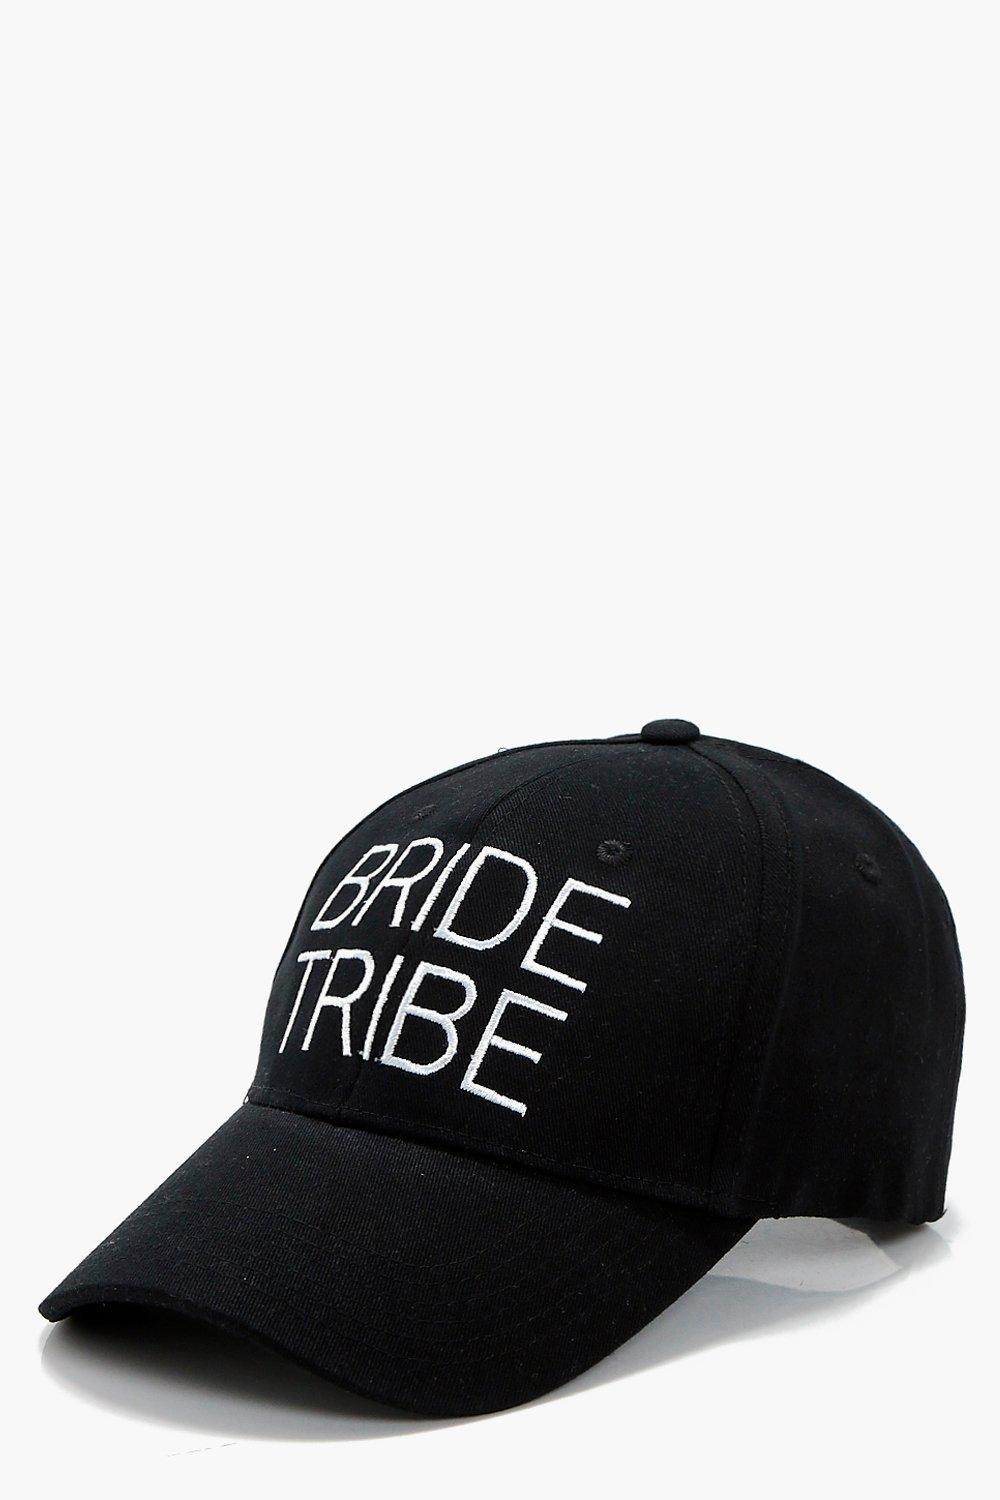 Bride Tribe Slogan Hat - black - Lacey Bride Tribe